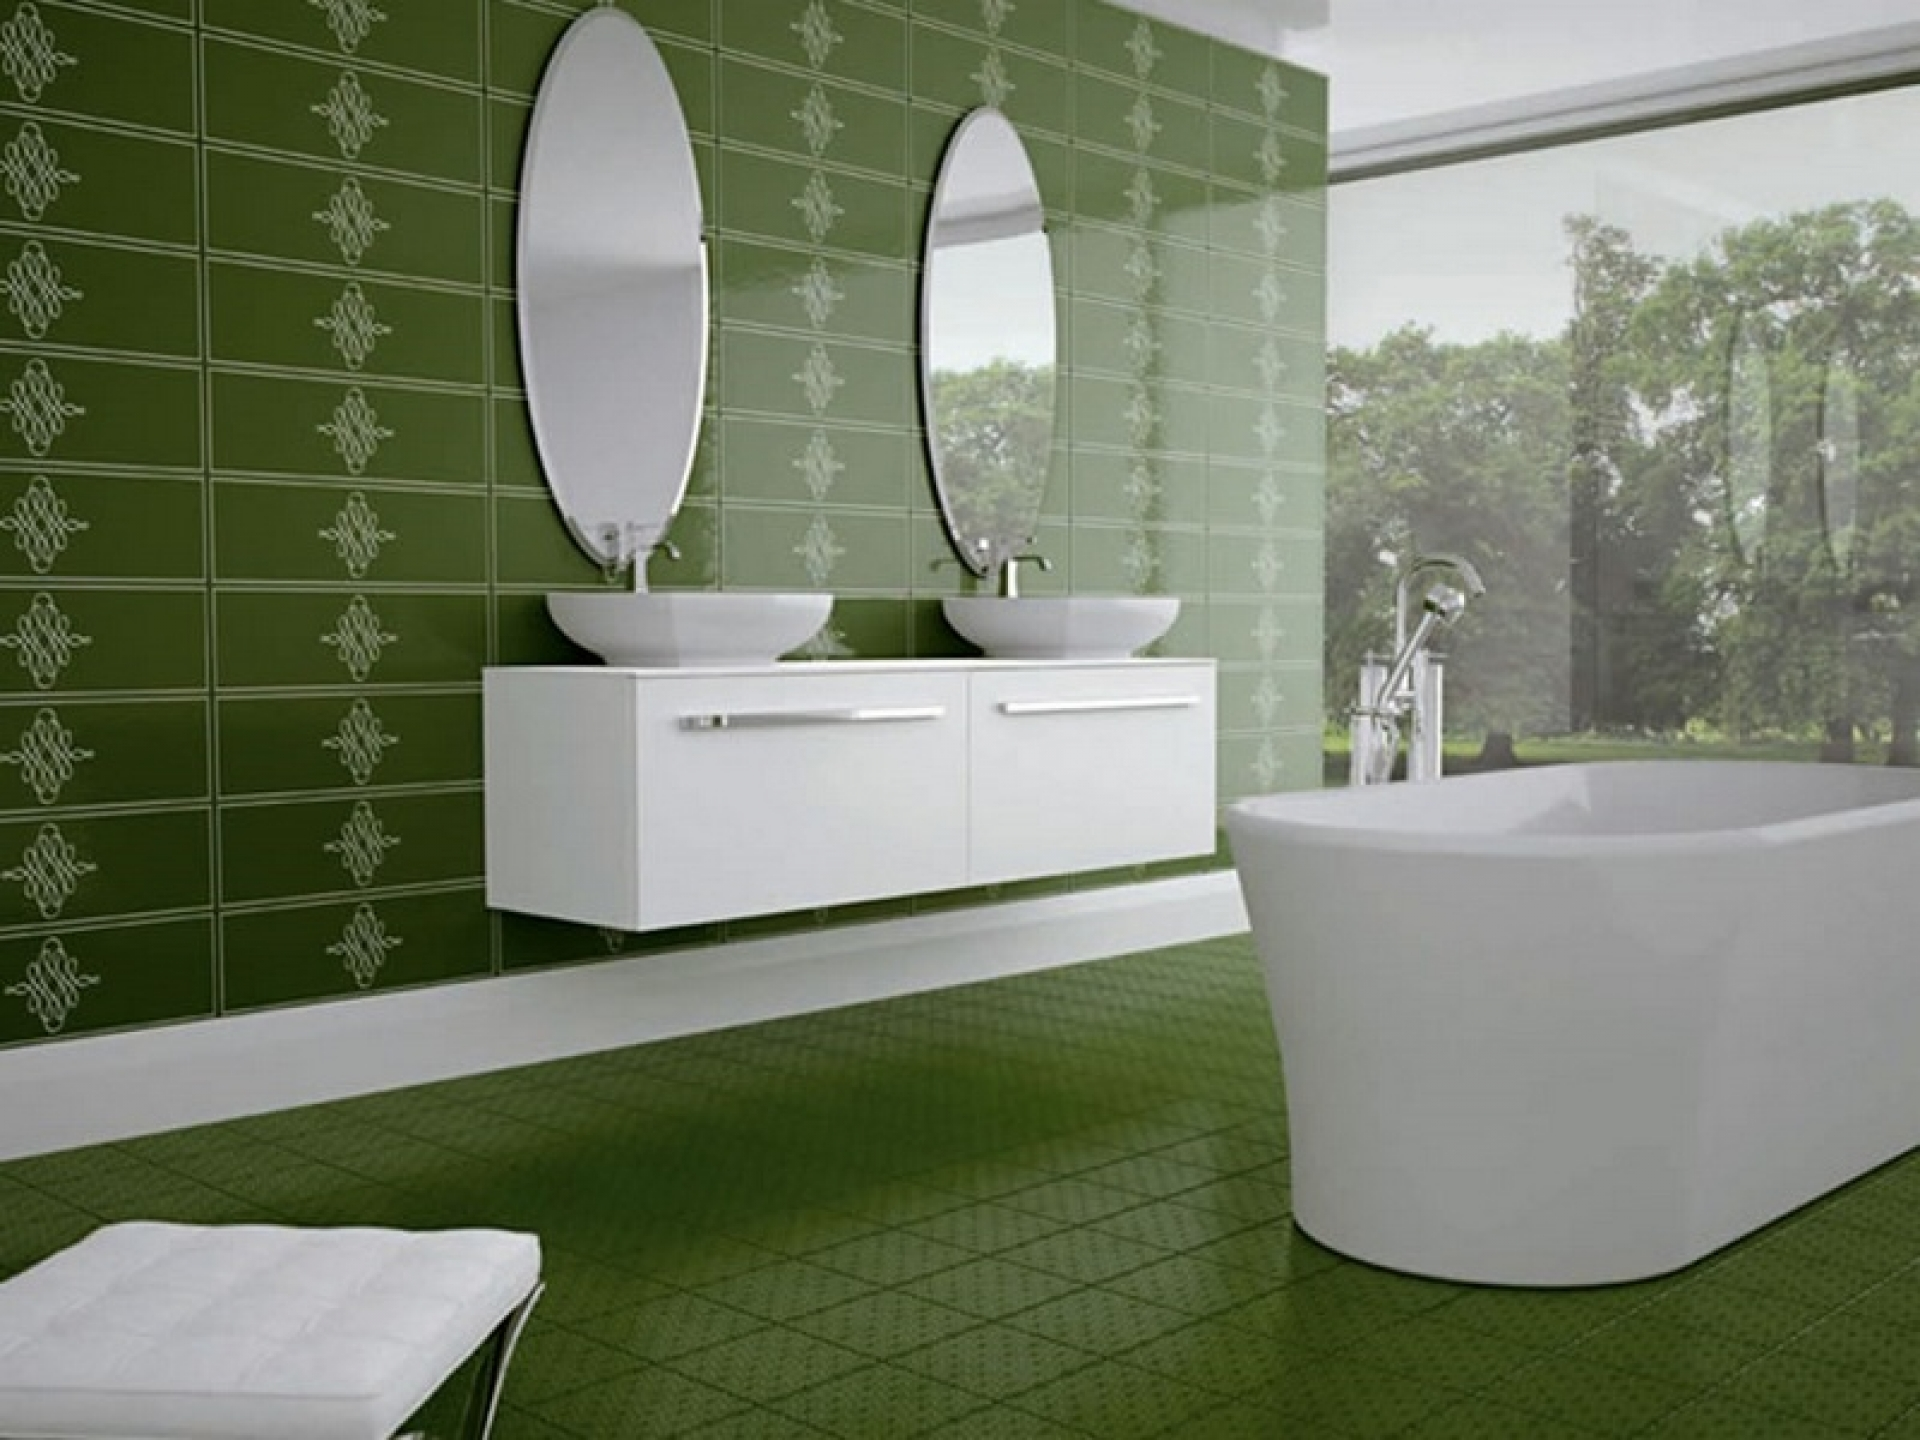 1920x1440-cool-bathroom-tile-designs-for-modern-homes-with-green-themes